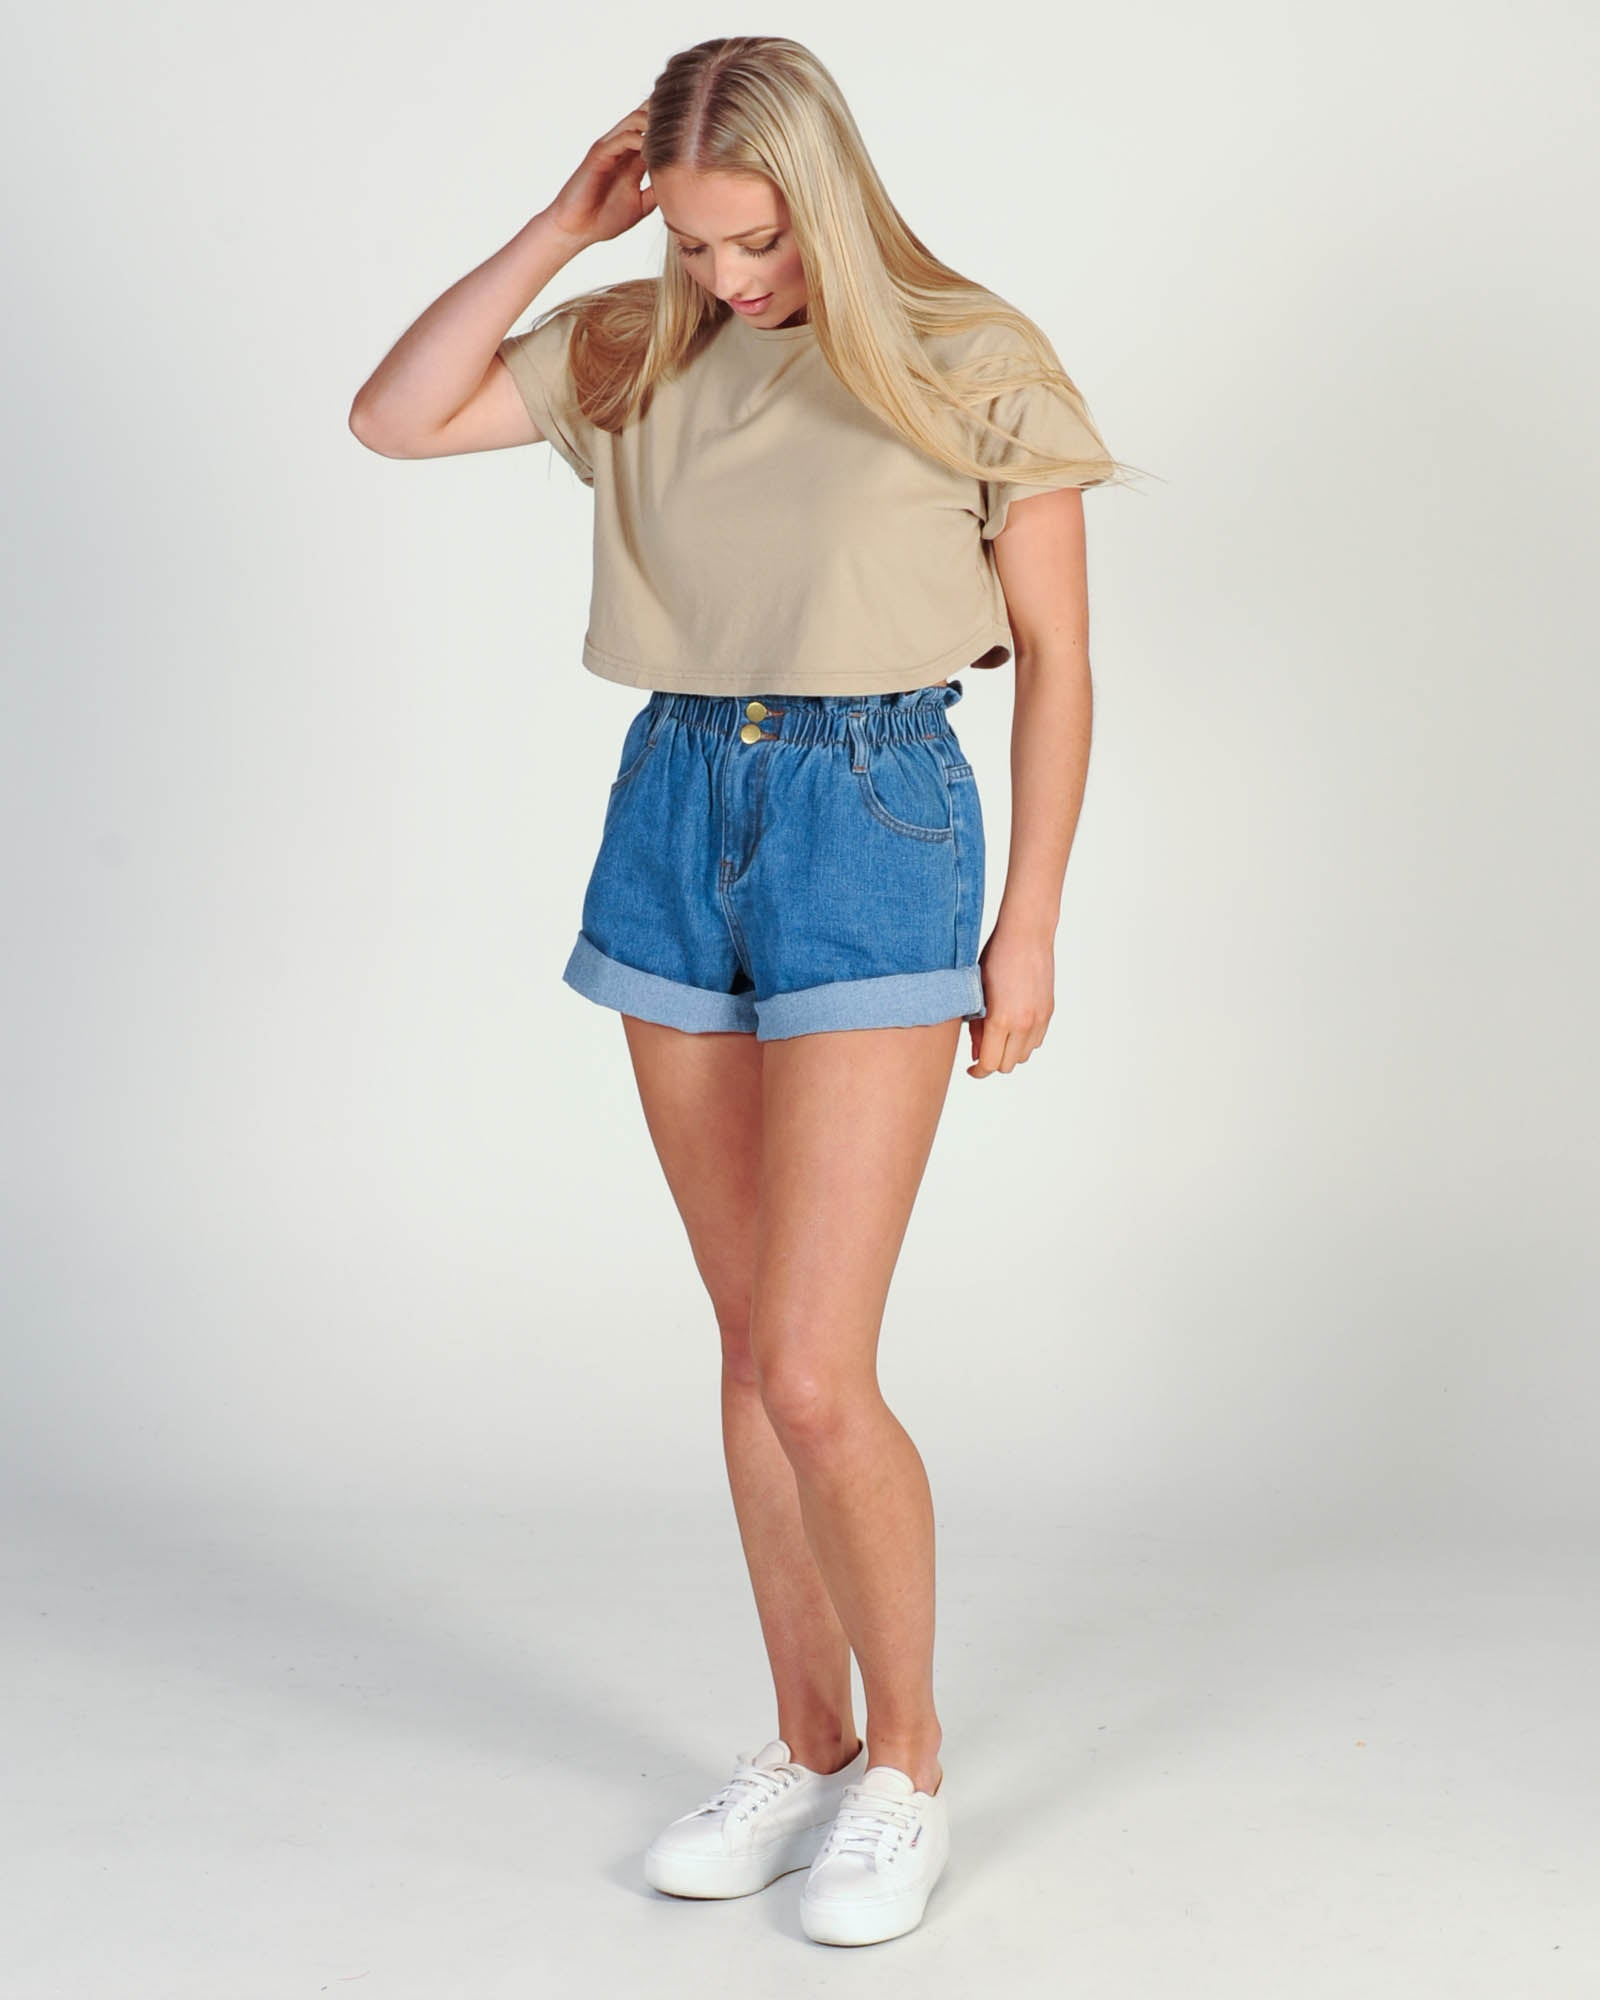 Silent Theory Bite The Bullet Crop Top - Beige